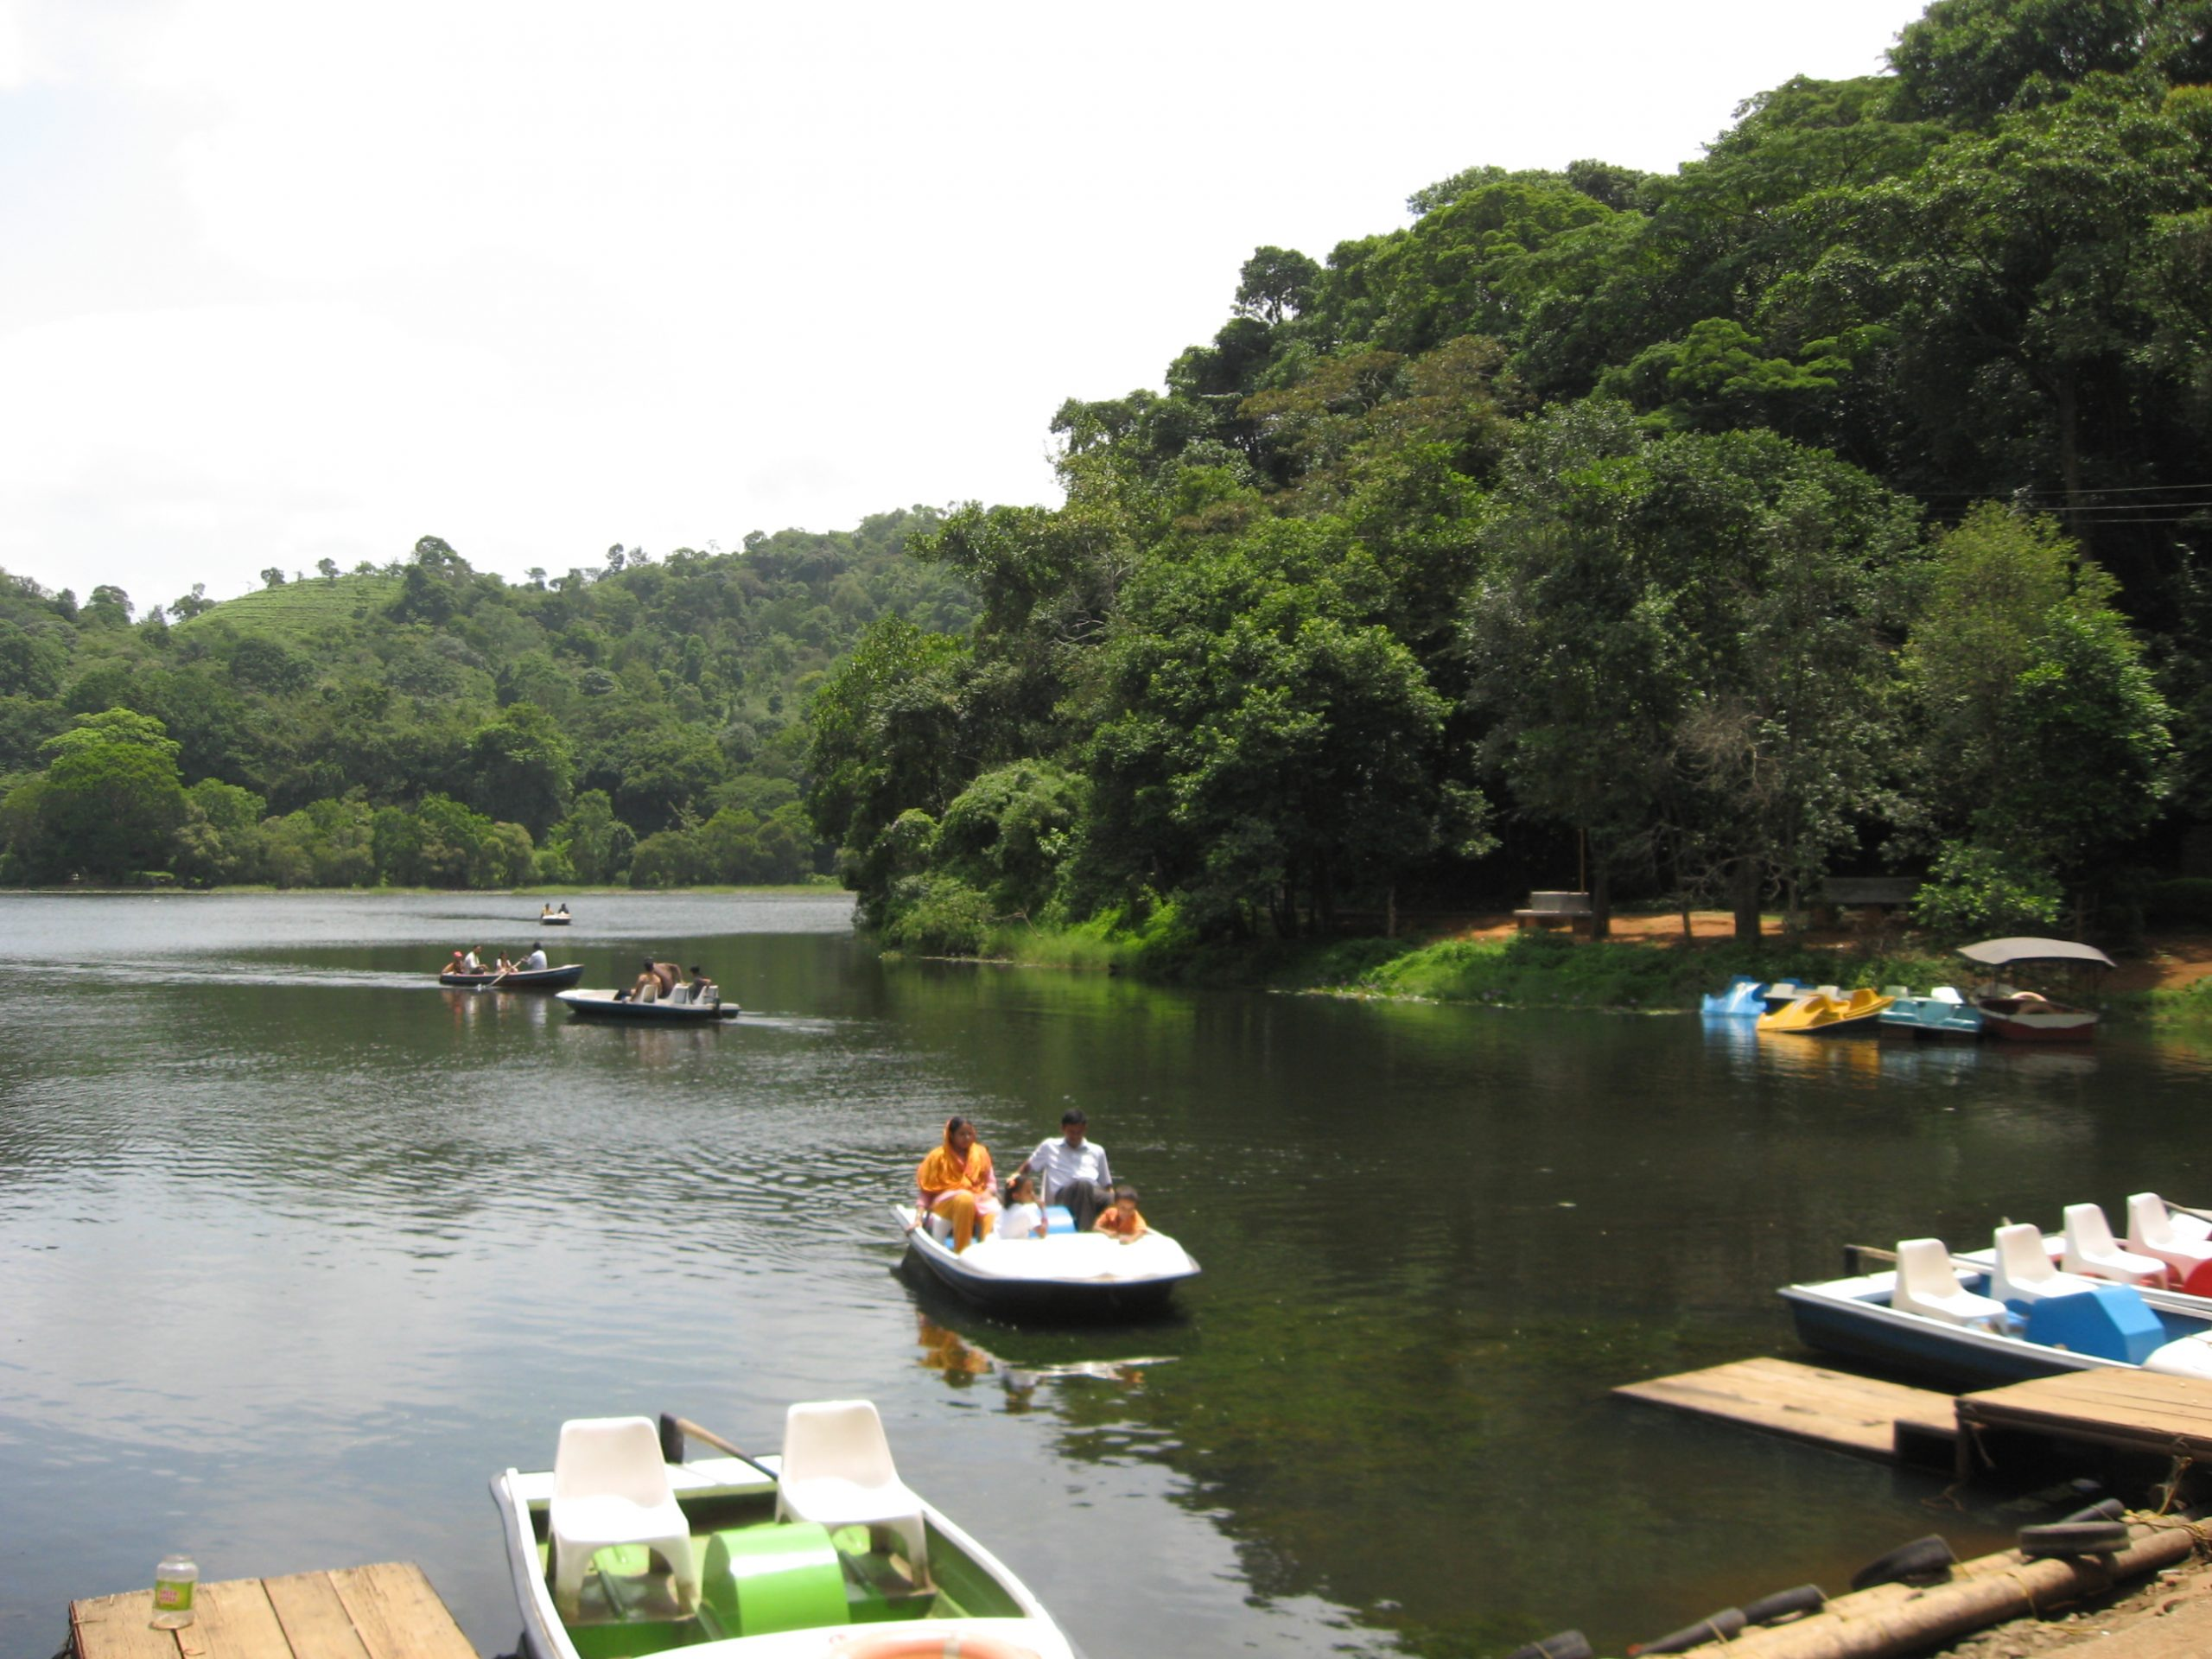 Go for Boating on the Pookode Lake - Things Which One Must Not Miss in Wayanad